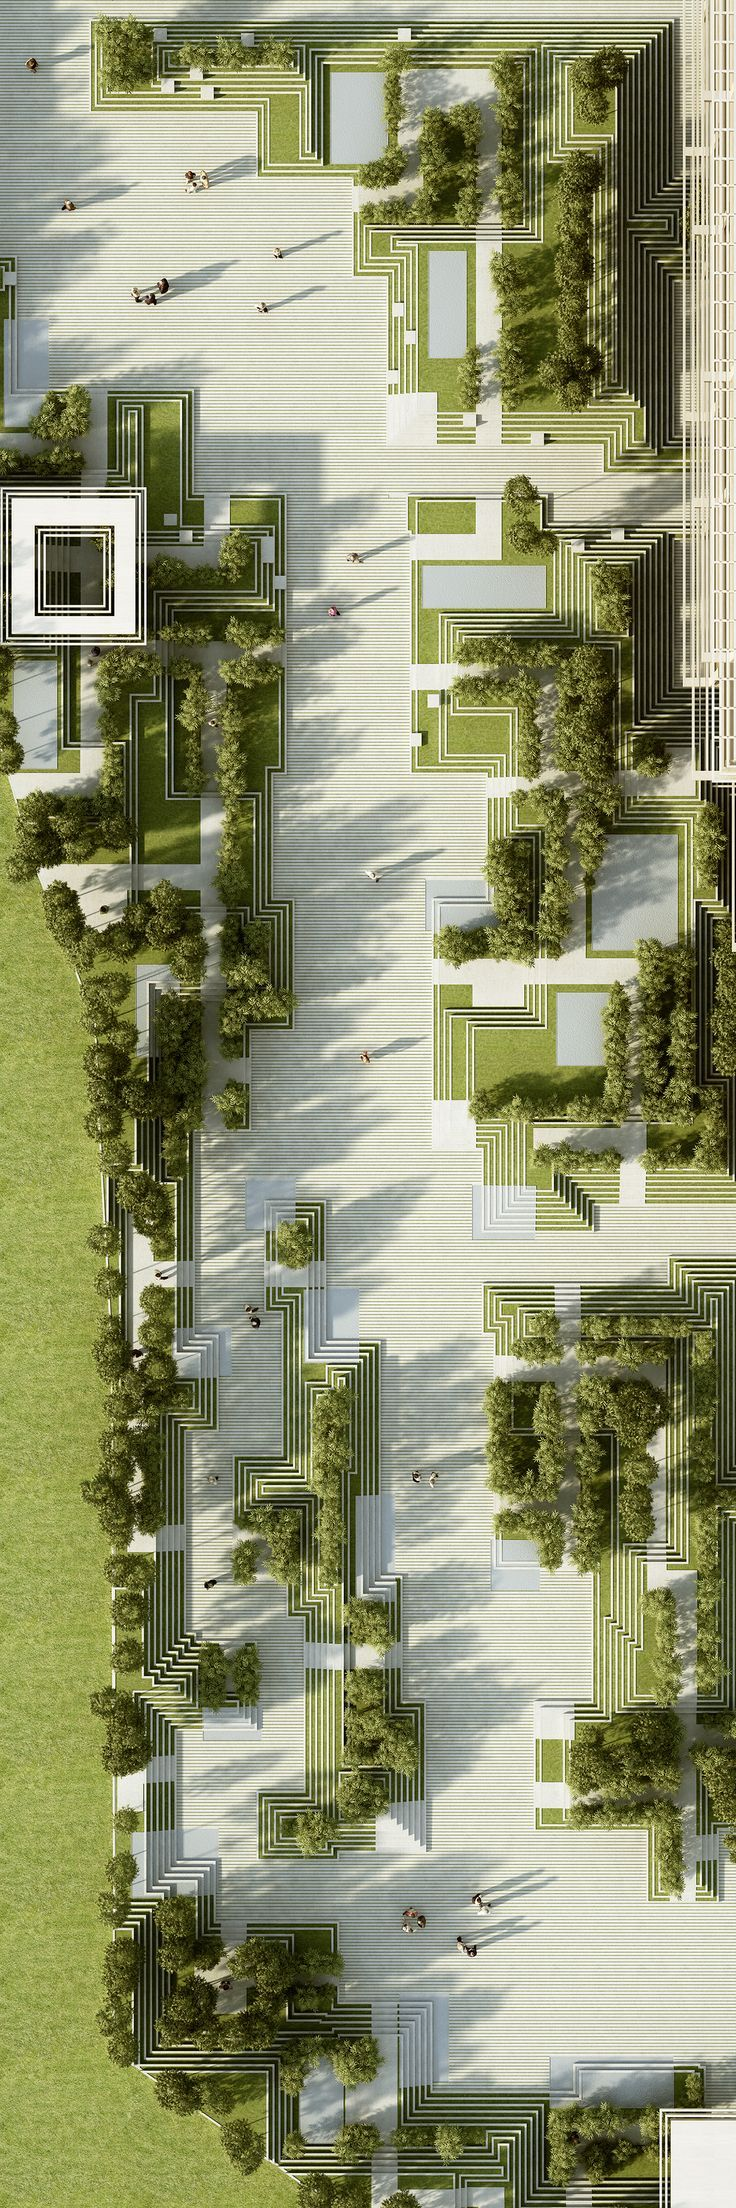 The project describes a landscape design and facade design for a